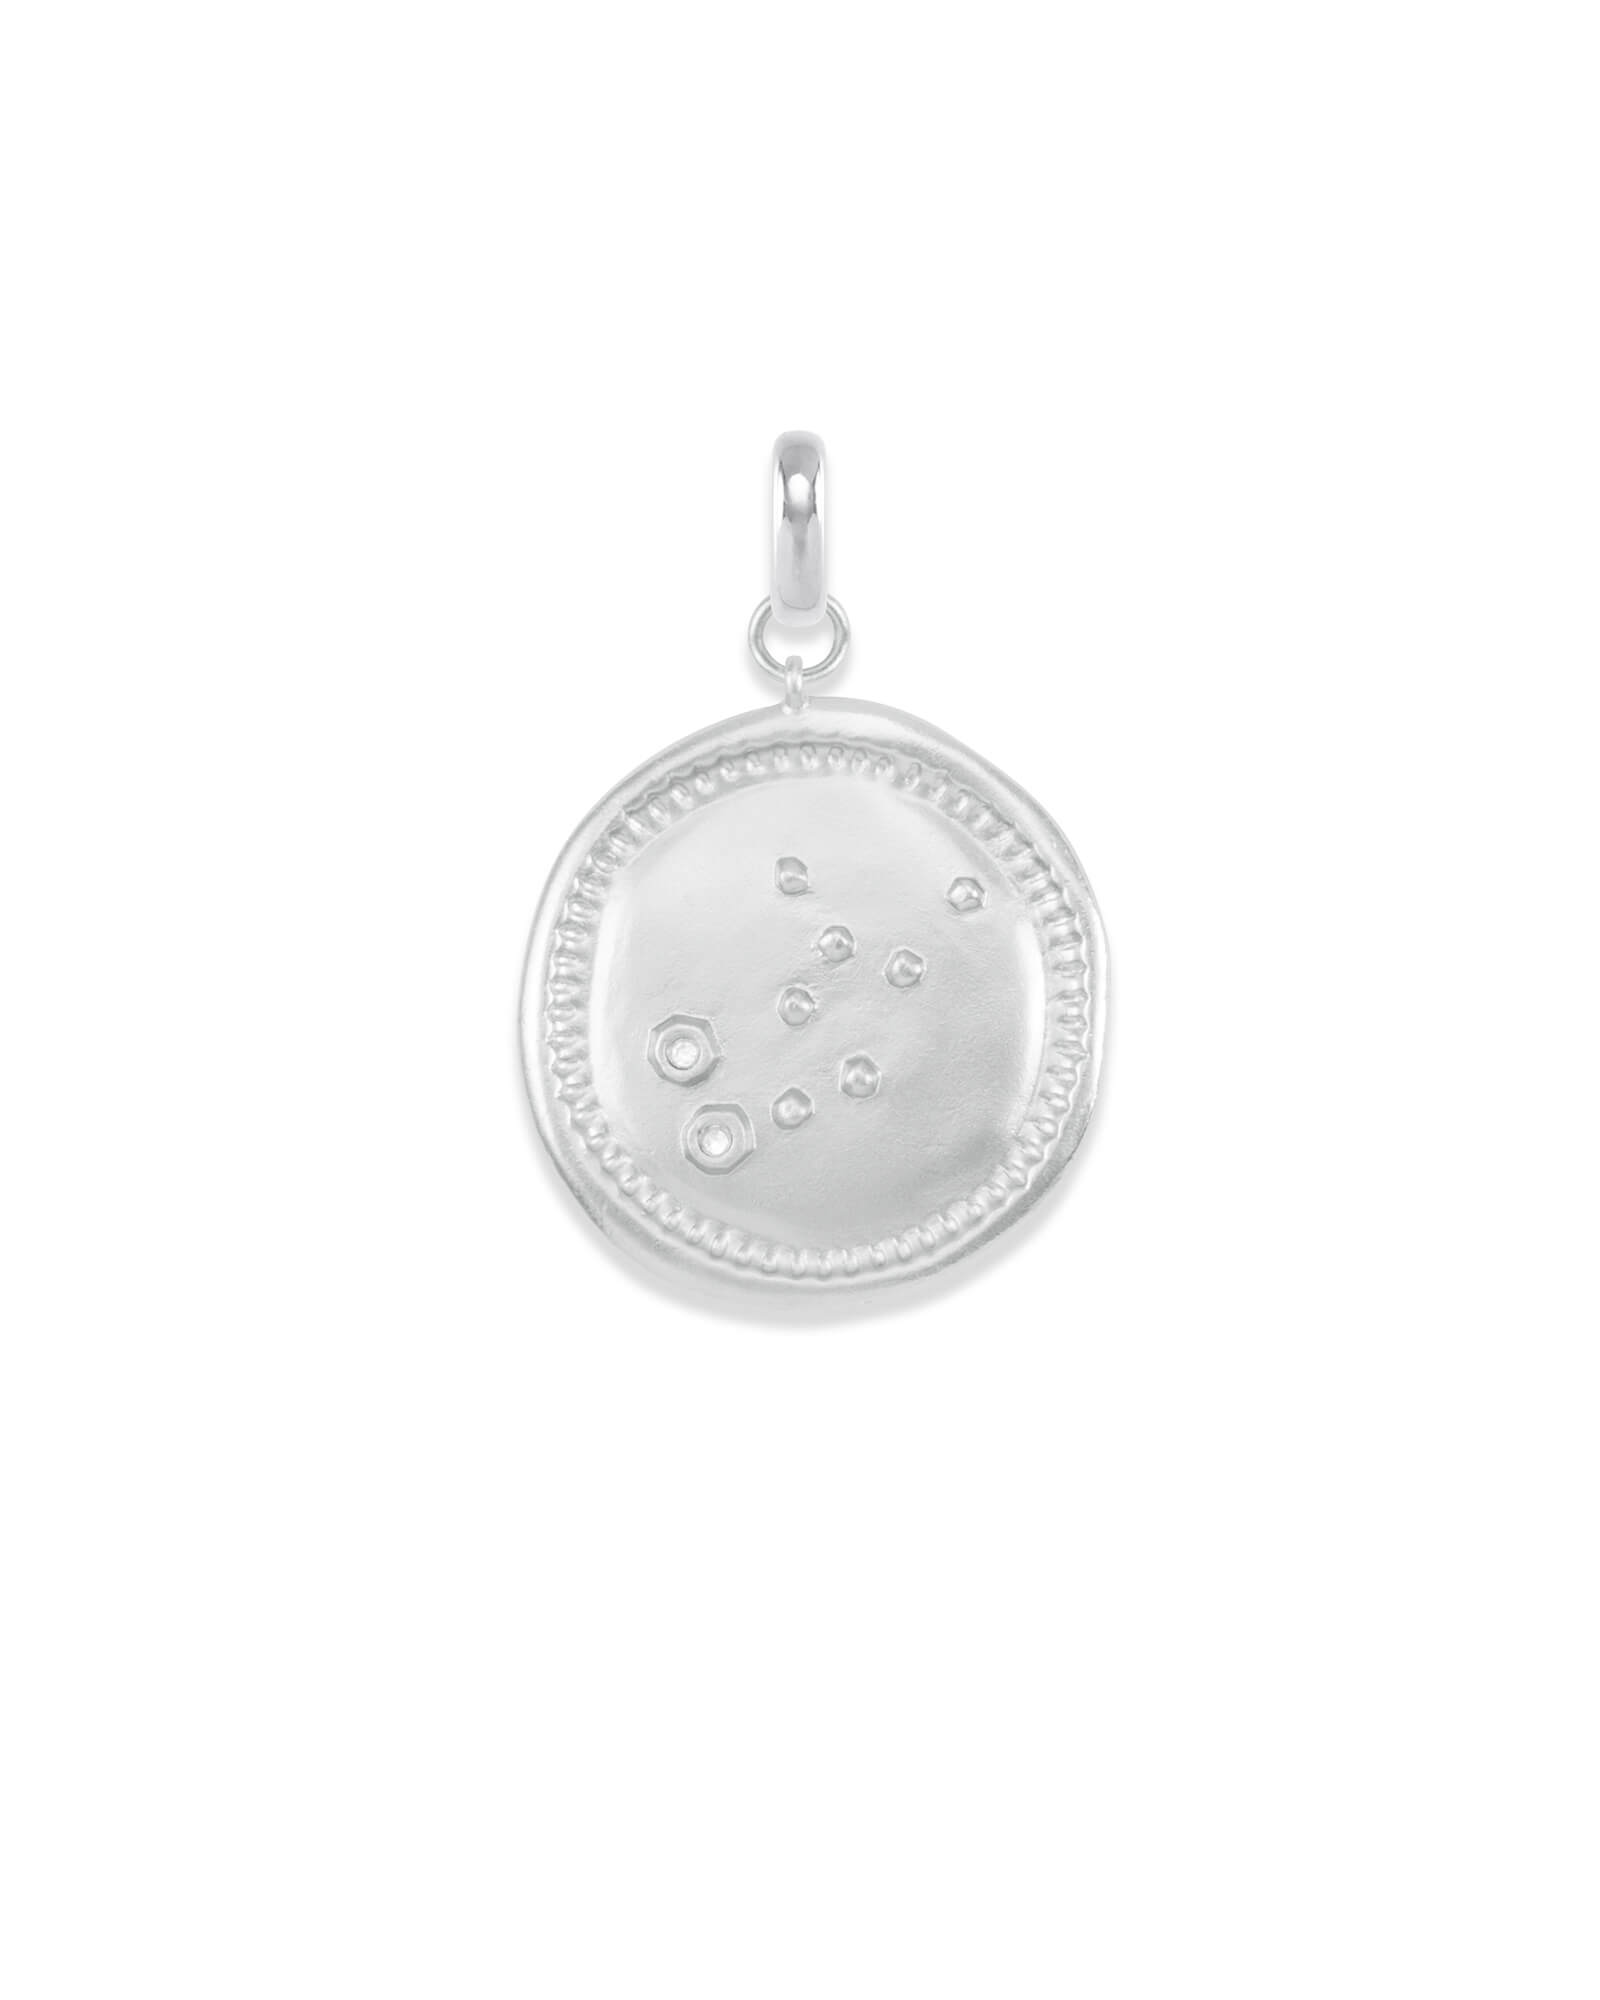 Virgo Coin Charm in Silver